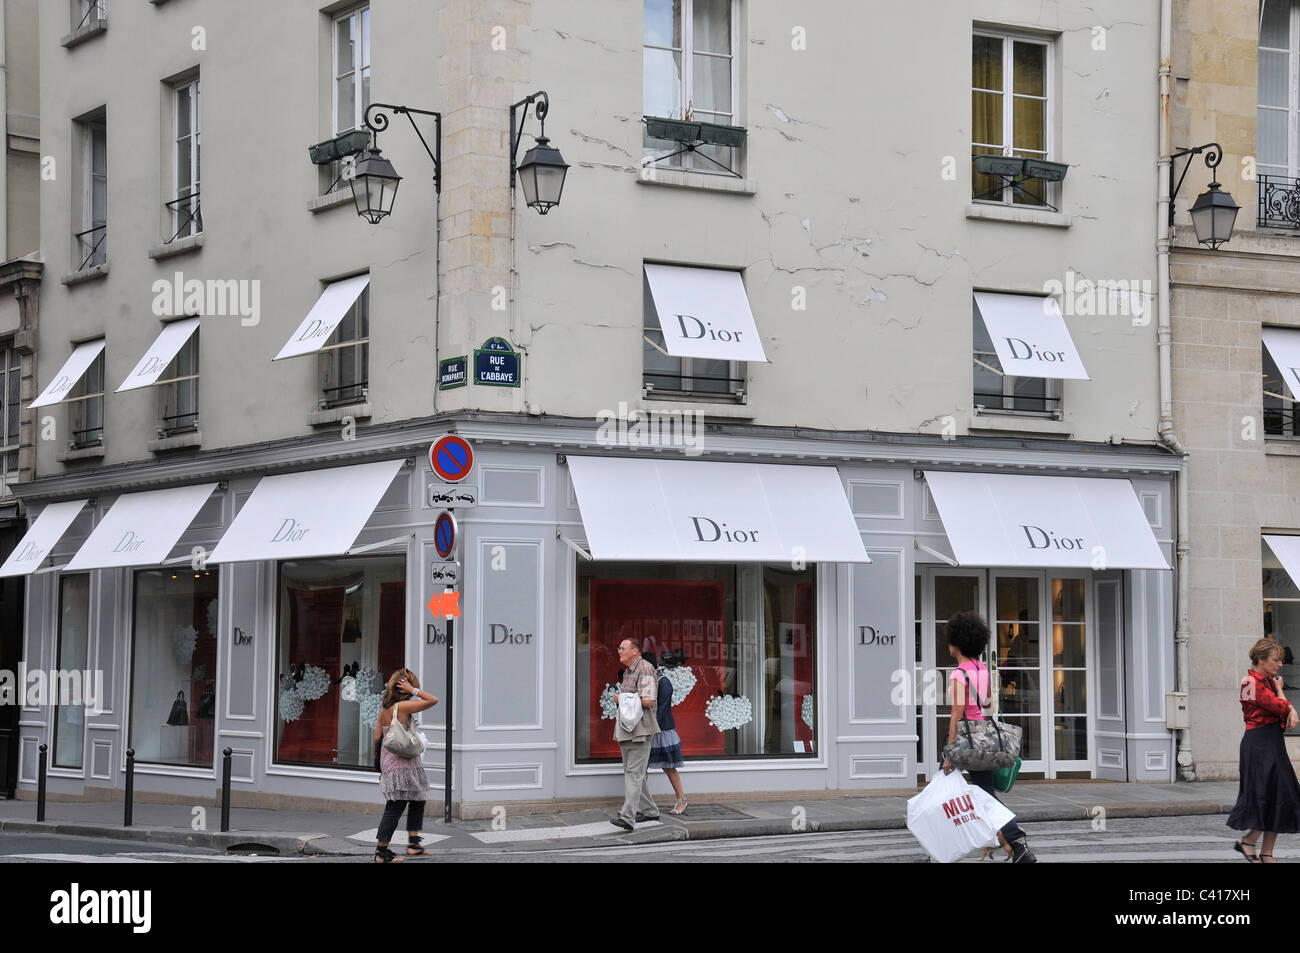 Dior boutique rue de l 39 abbaye and rue bonaparte paris france stock photo - Paris shopping boutiques ...